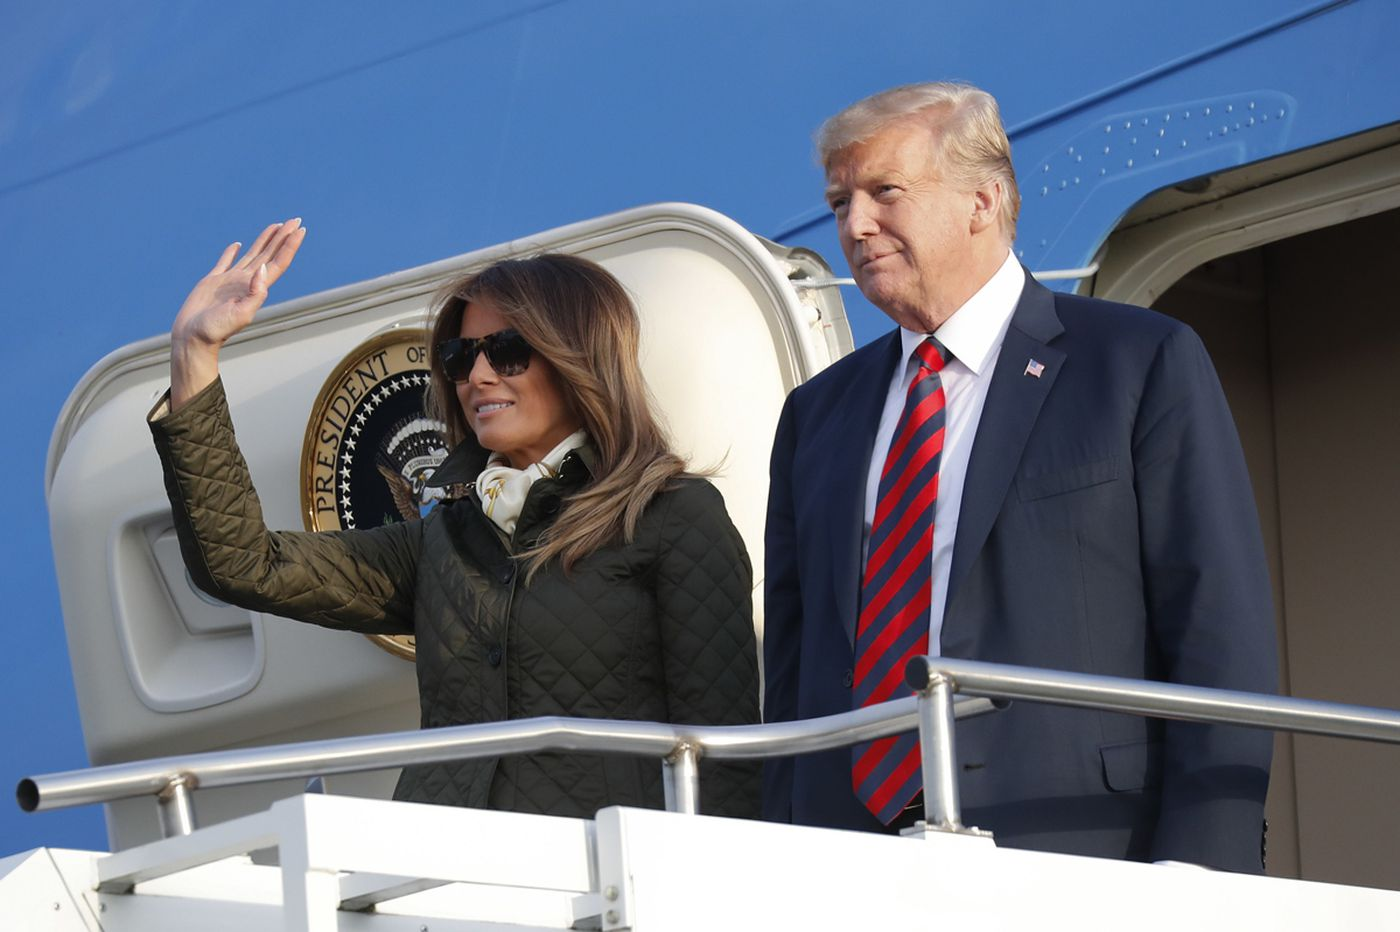 Melania Trump's rep fires back after report the president 'raged' over TV airing CNN